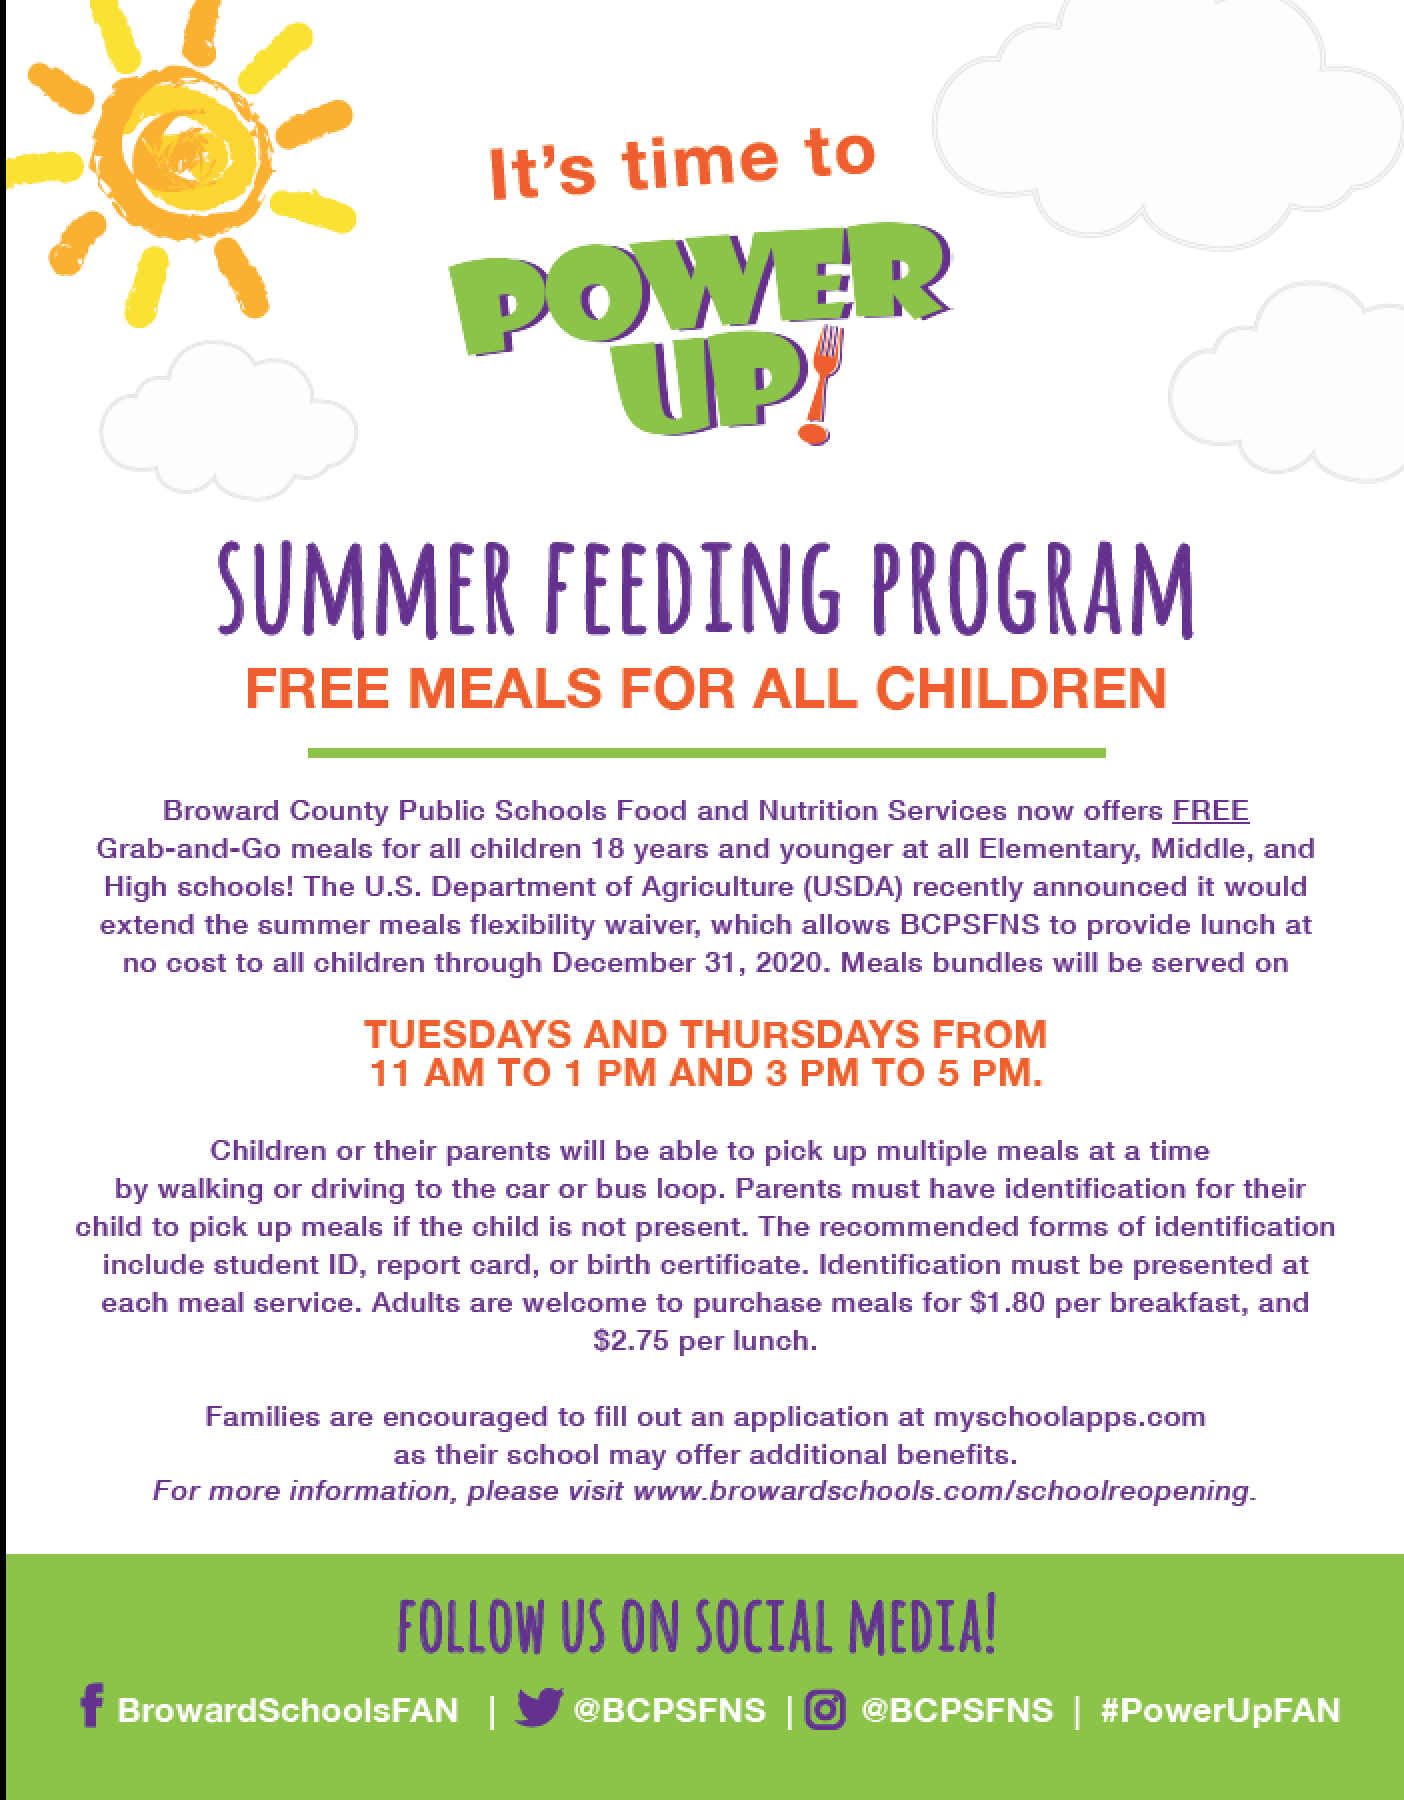 Summer Feeding Program: FREE MEAL FOR ALL CHILDREN